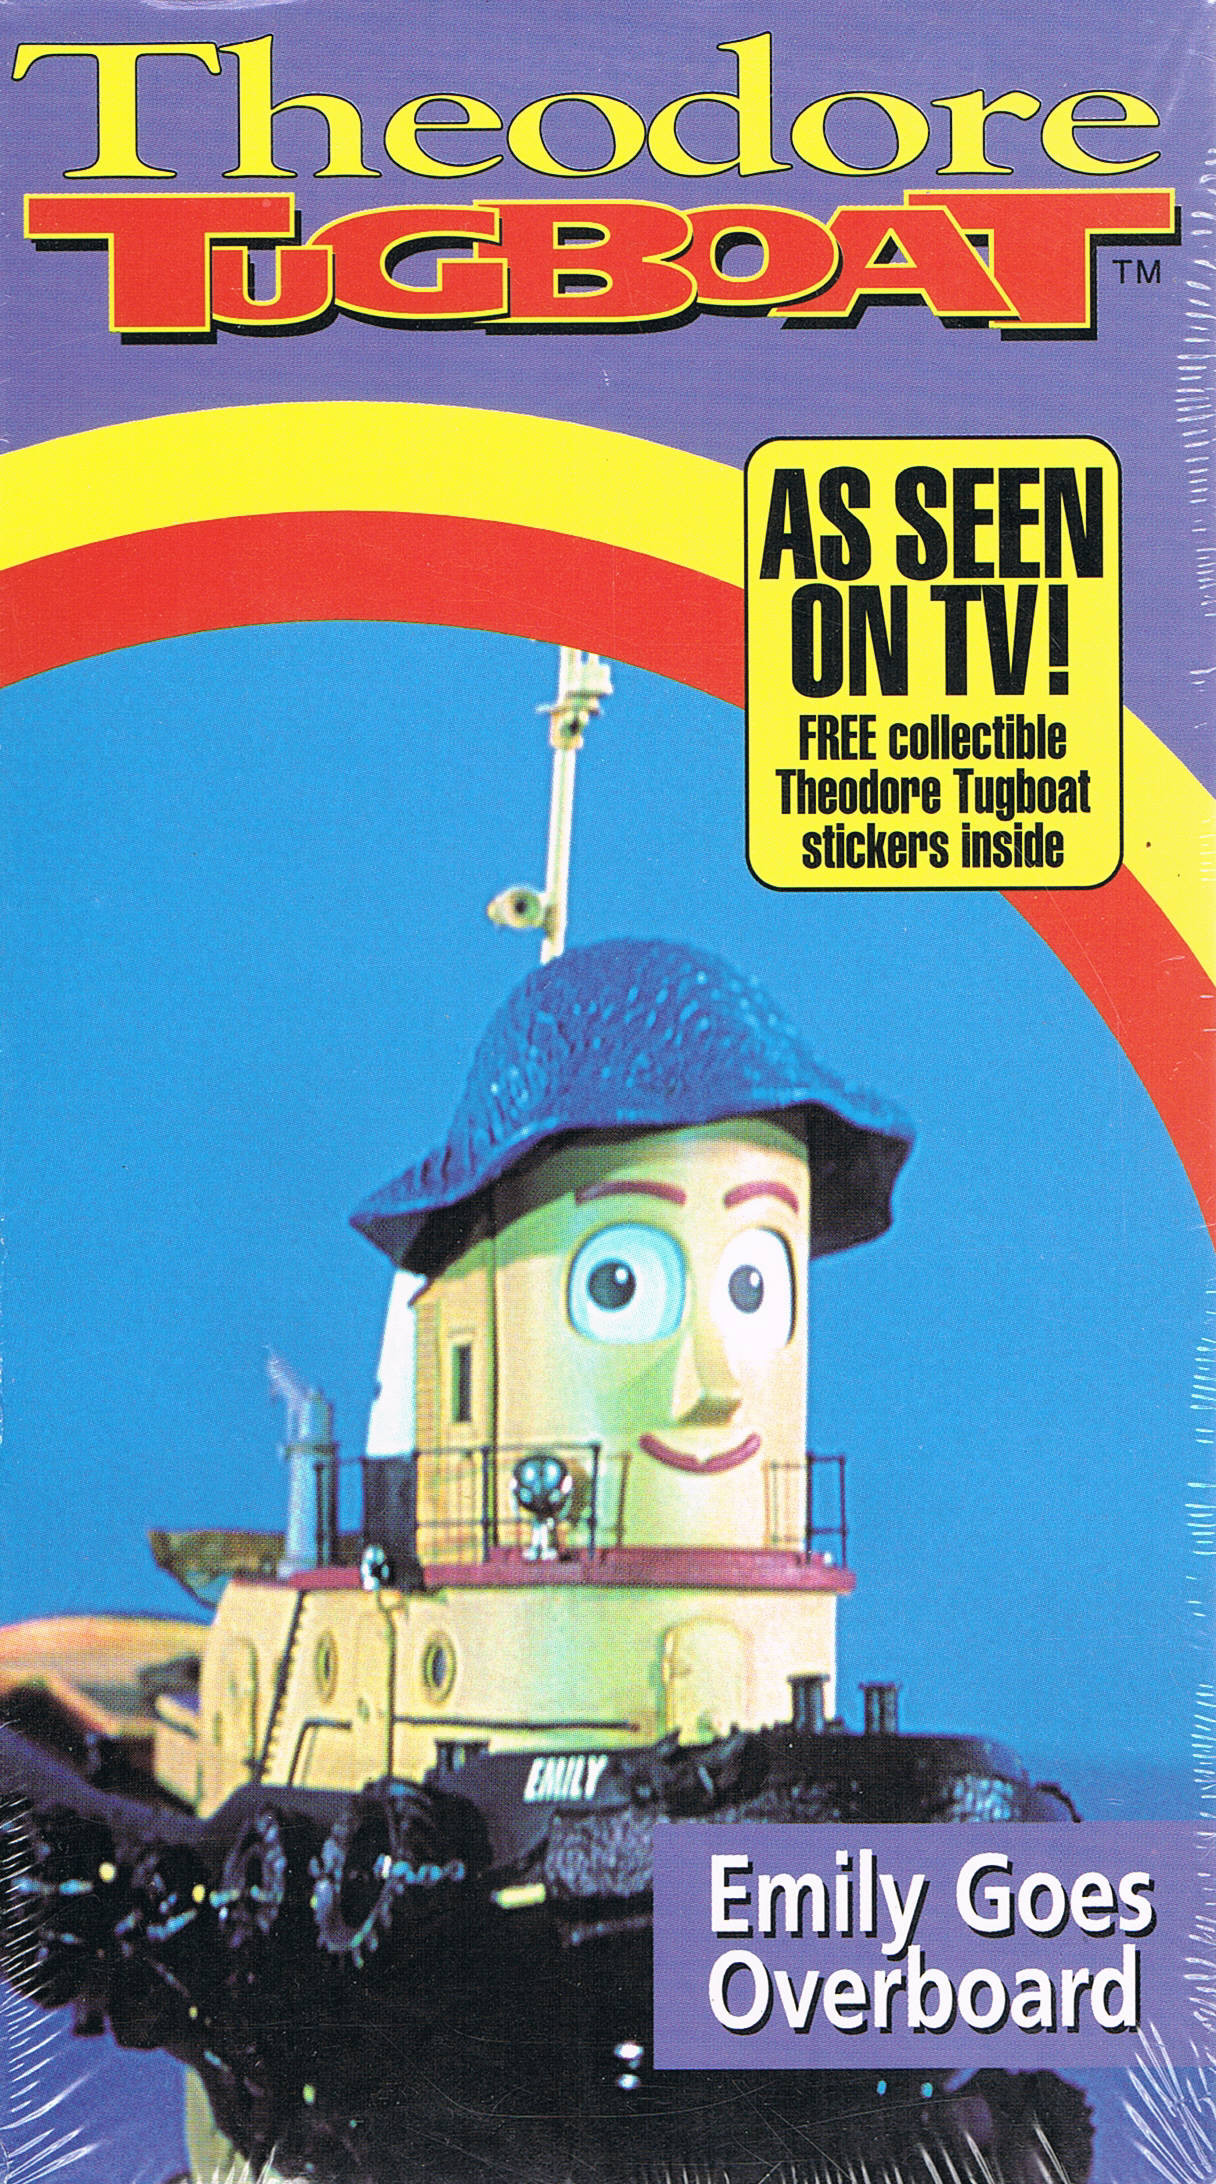 Emily Goes Overboard (VHS)